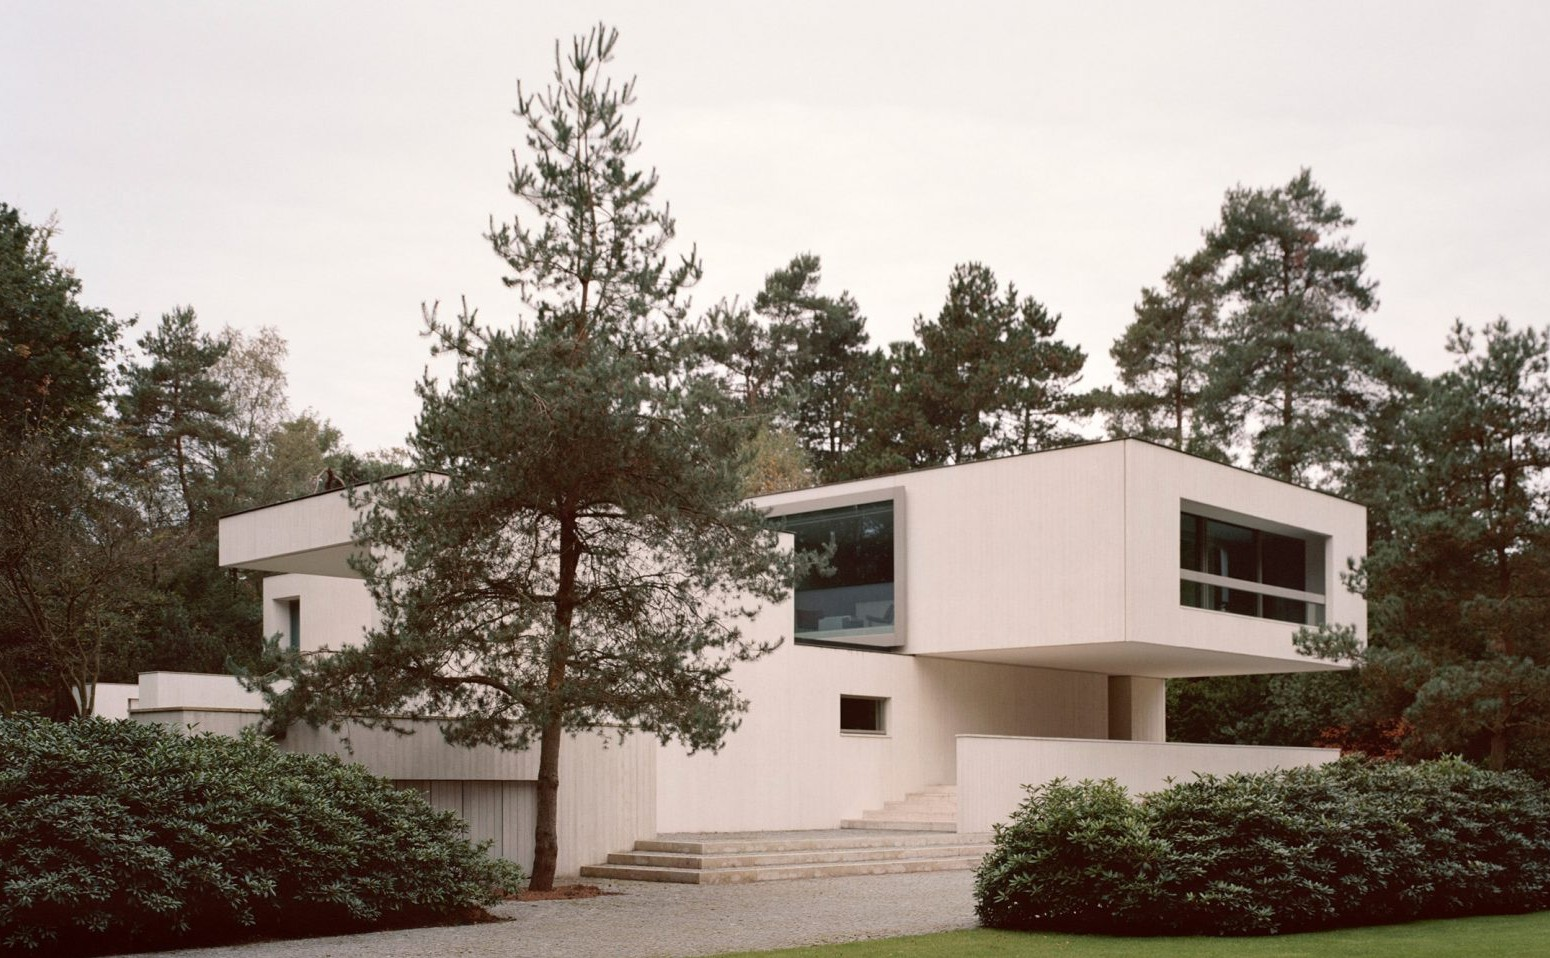 villa-waalre-russell-jones-architecture_dezeen_2364_hero-1704x959